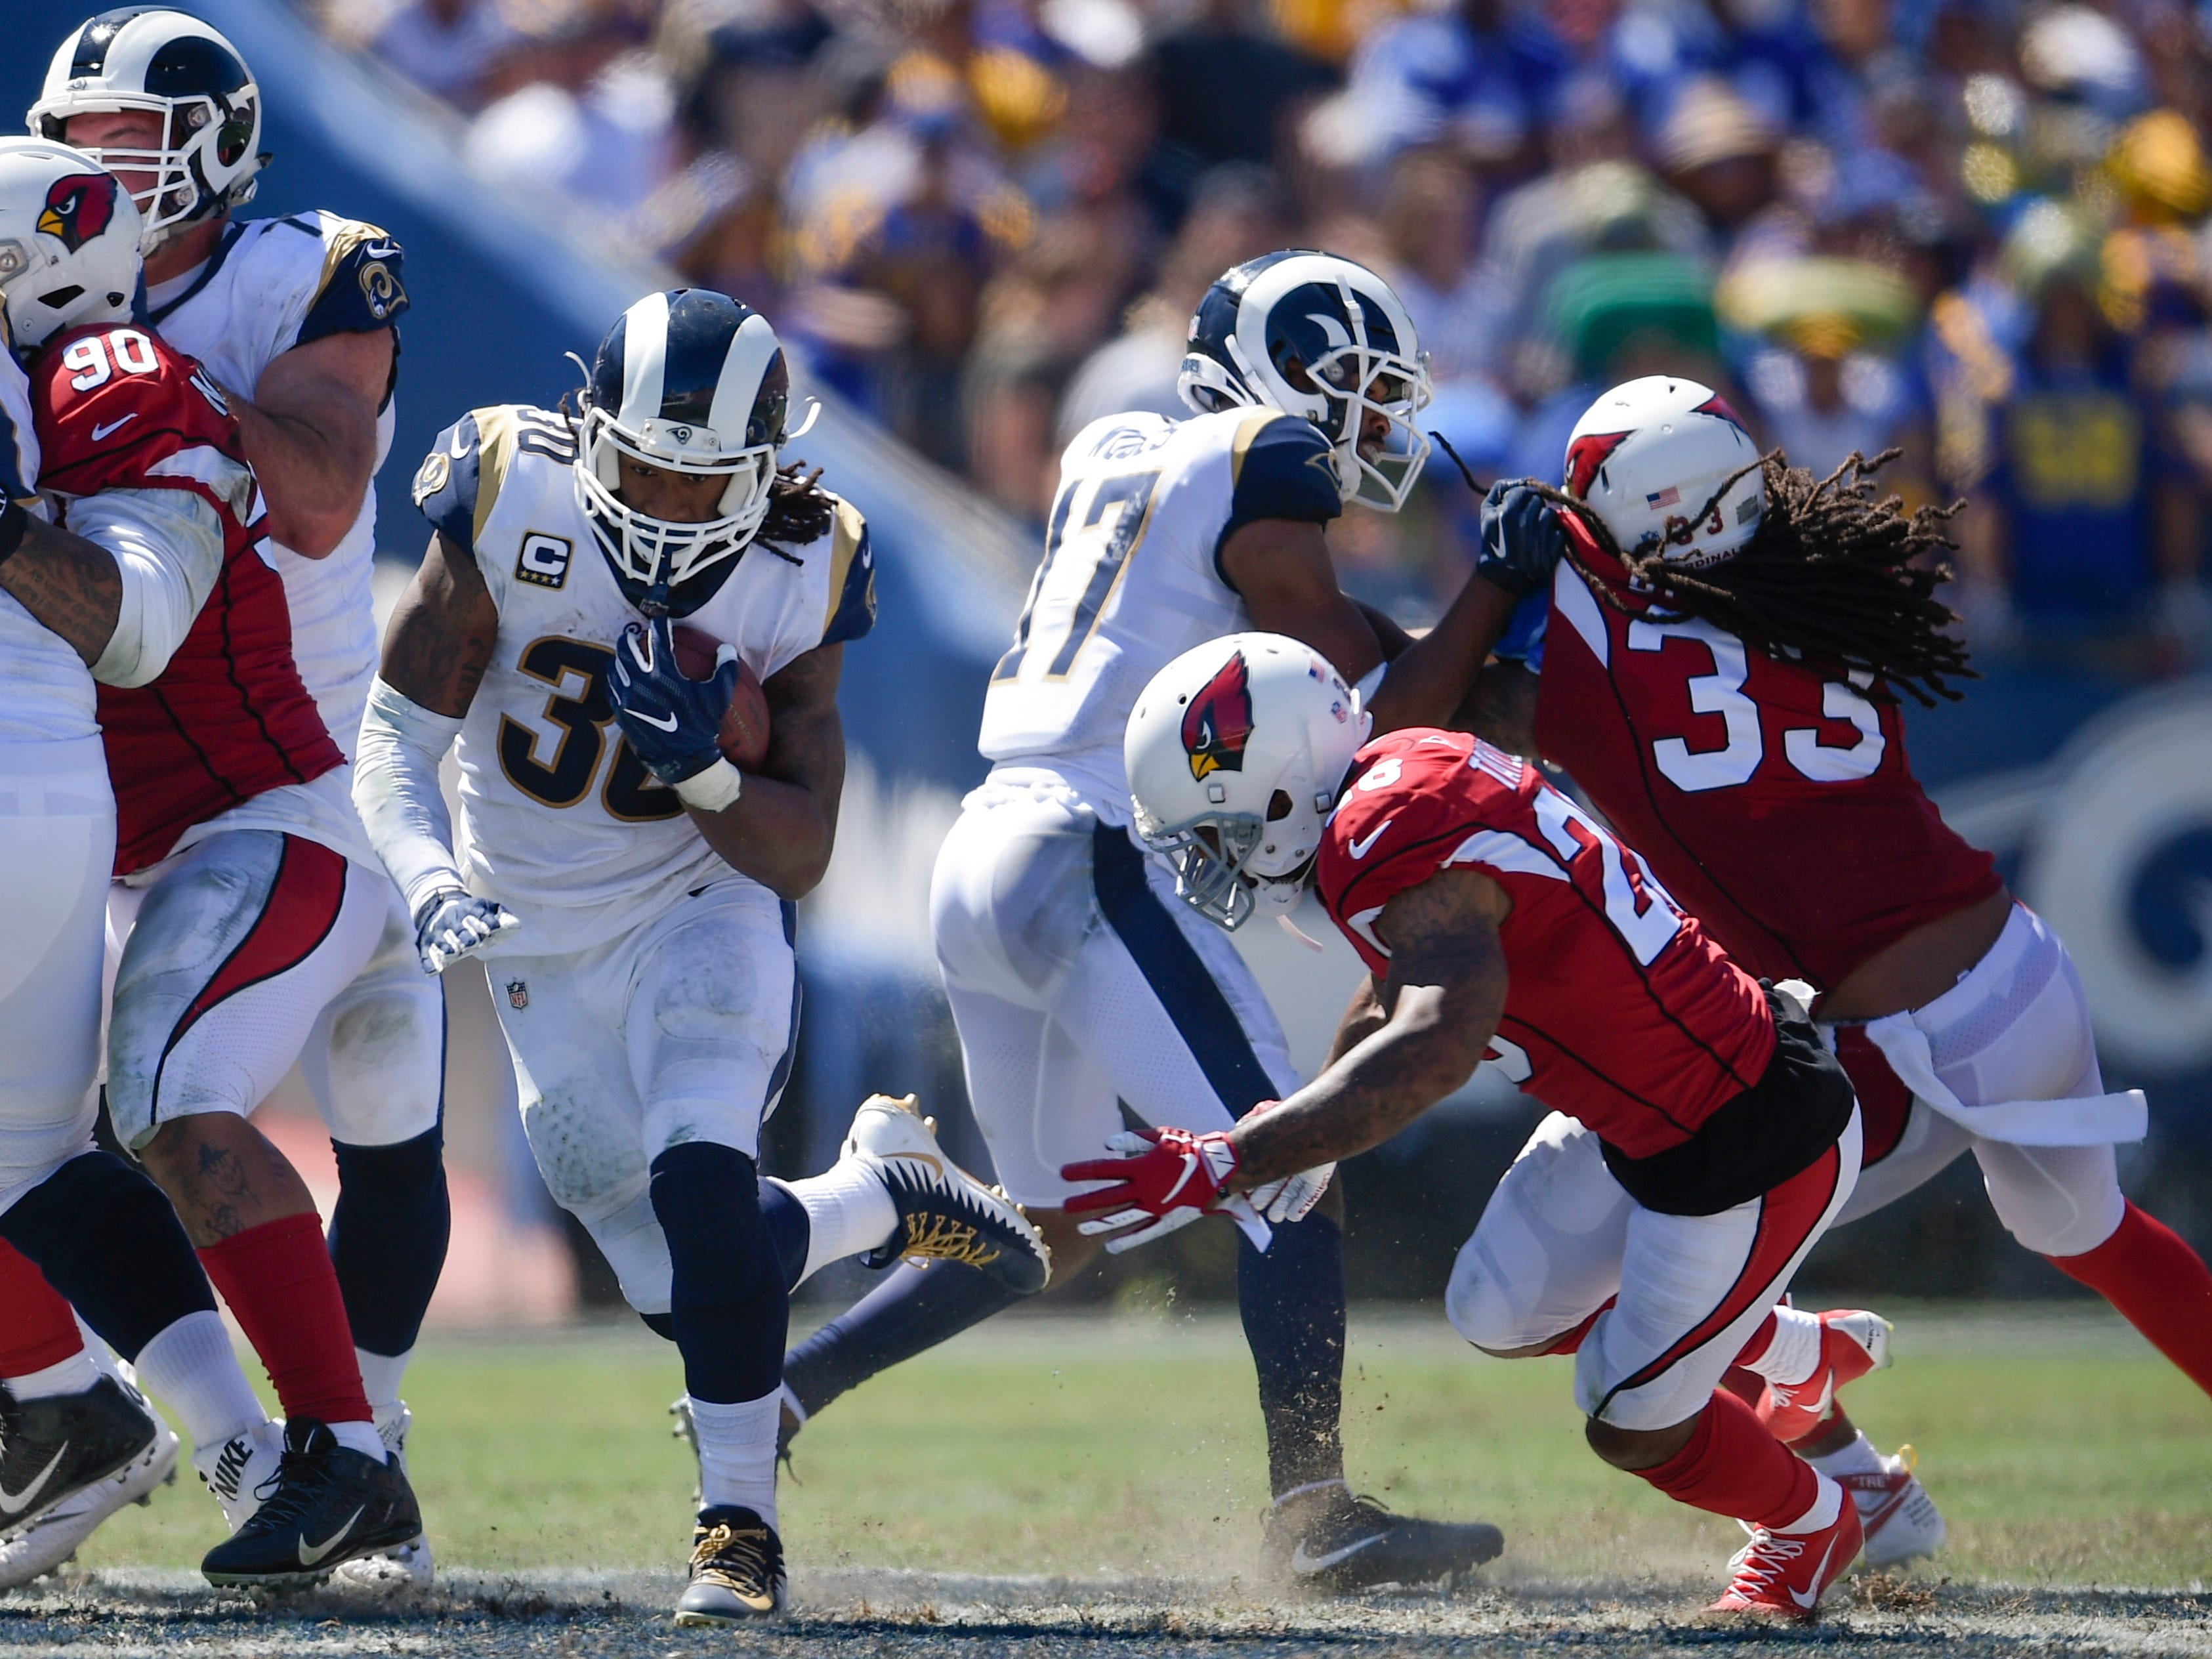 Sep 16, 2018; Los Angeles, CA, USA; Los Angeles Rams running back Todd Gurley II (30) runs the ball during the first half against the Arizona Cardinals at Los Angeles Memorial Coliseum. Mandatory Credit: Kelvin Kuo-USA TODAY Sports